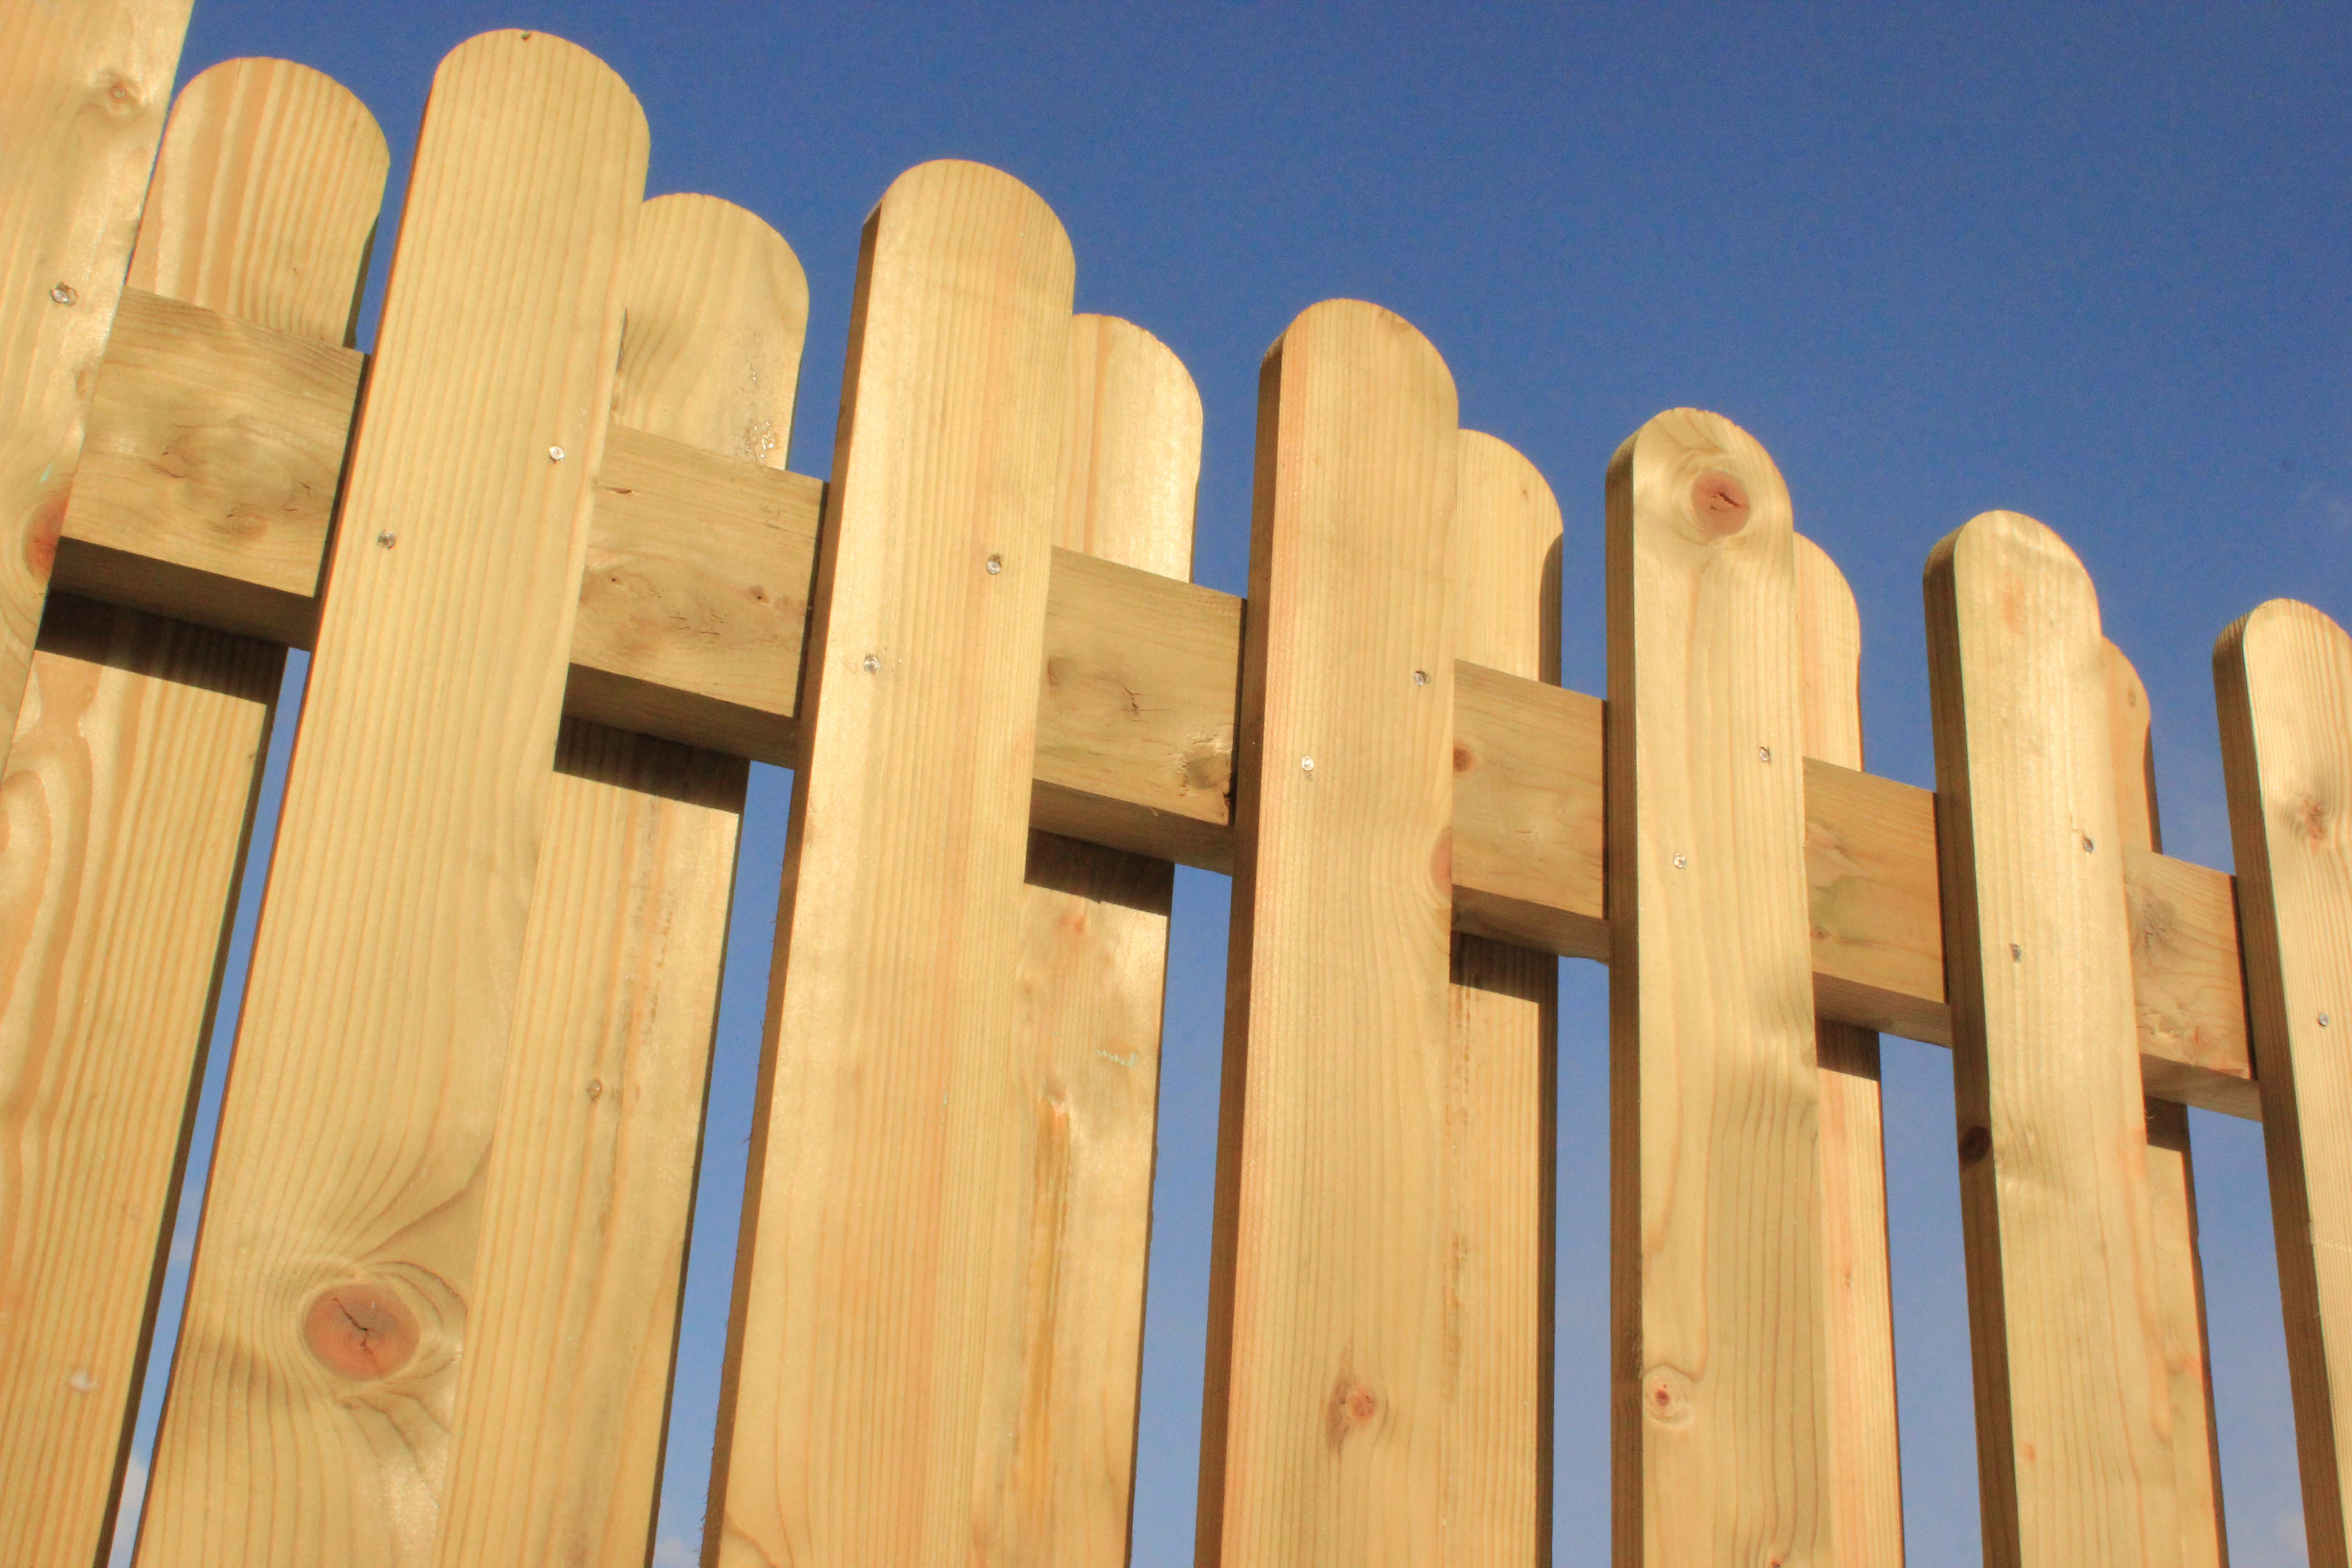 Palisade fence with alternating pales